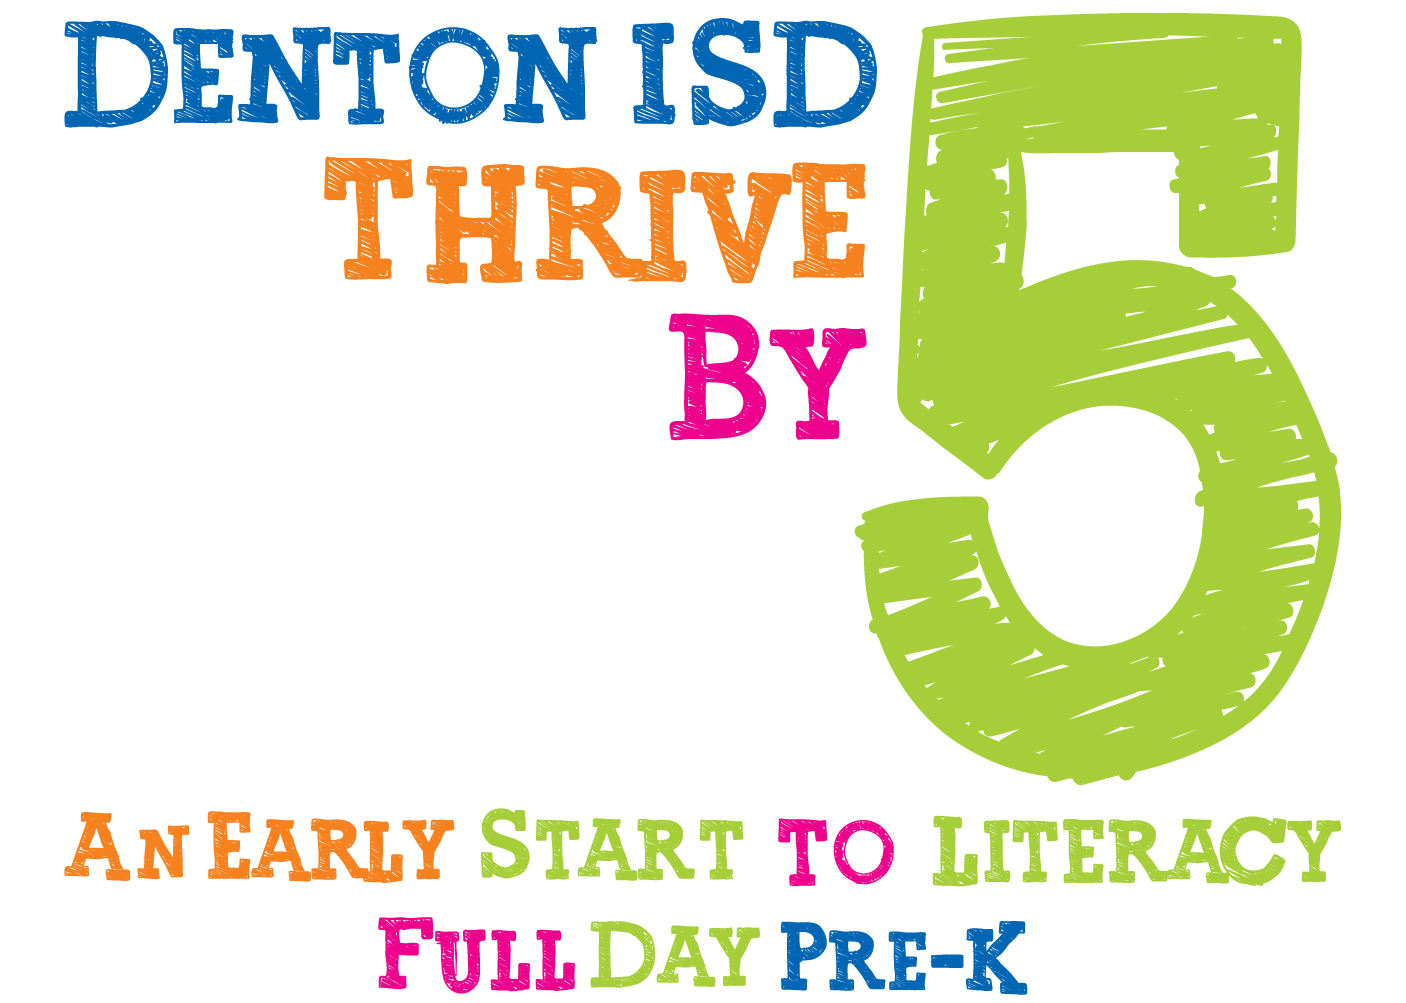 Denton ISD Thrive by 5: An early start to literacy- full day pre-K